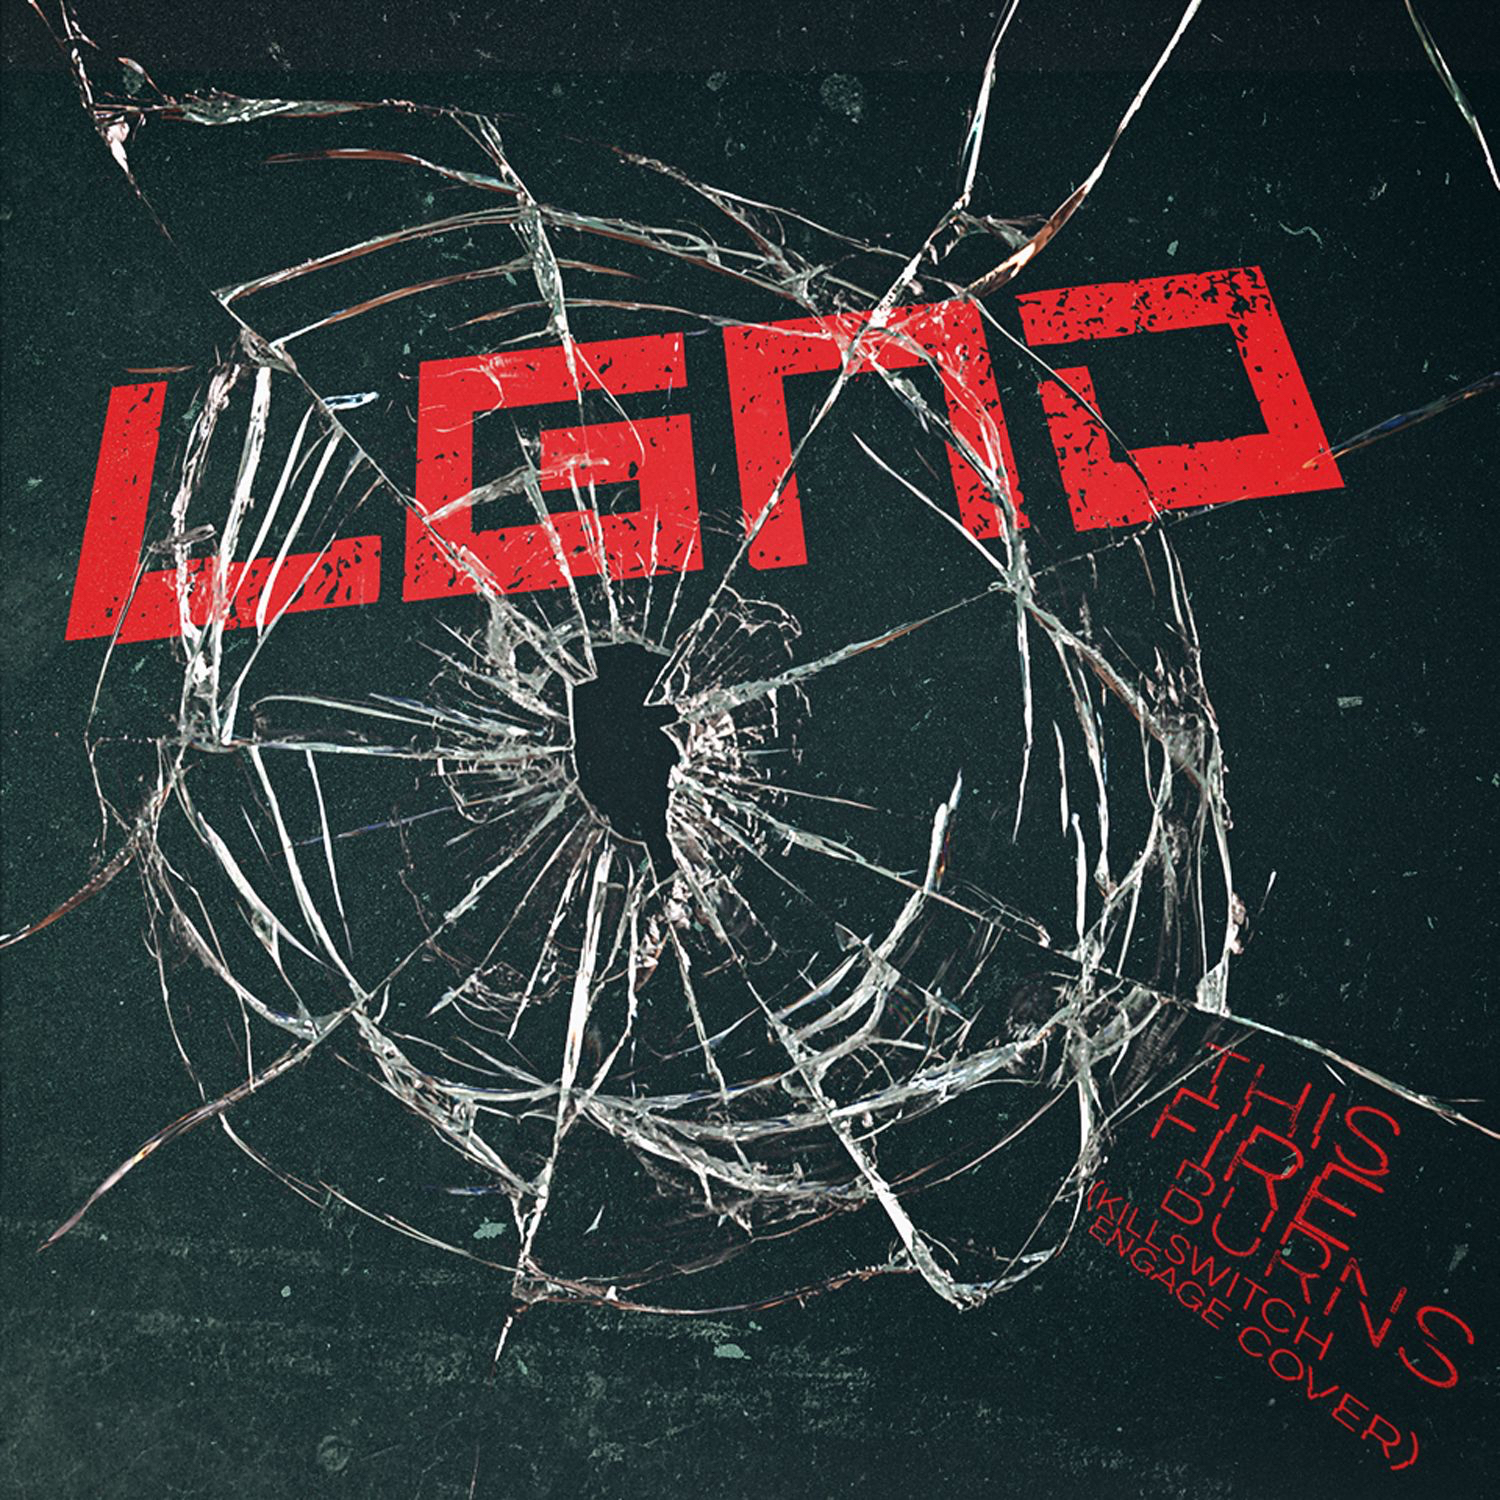 LGND - This Fire Burns (Killswitch Engage cover) (2016)